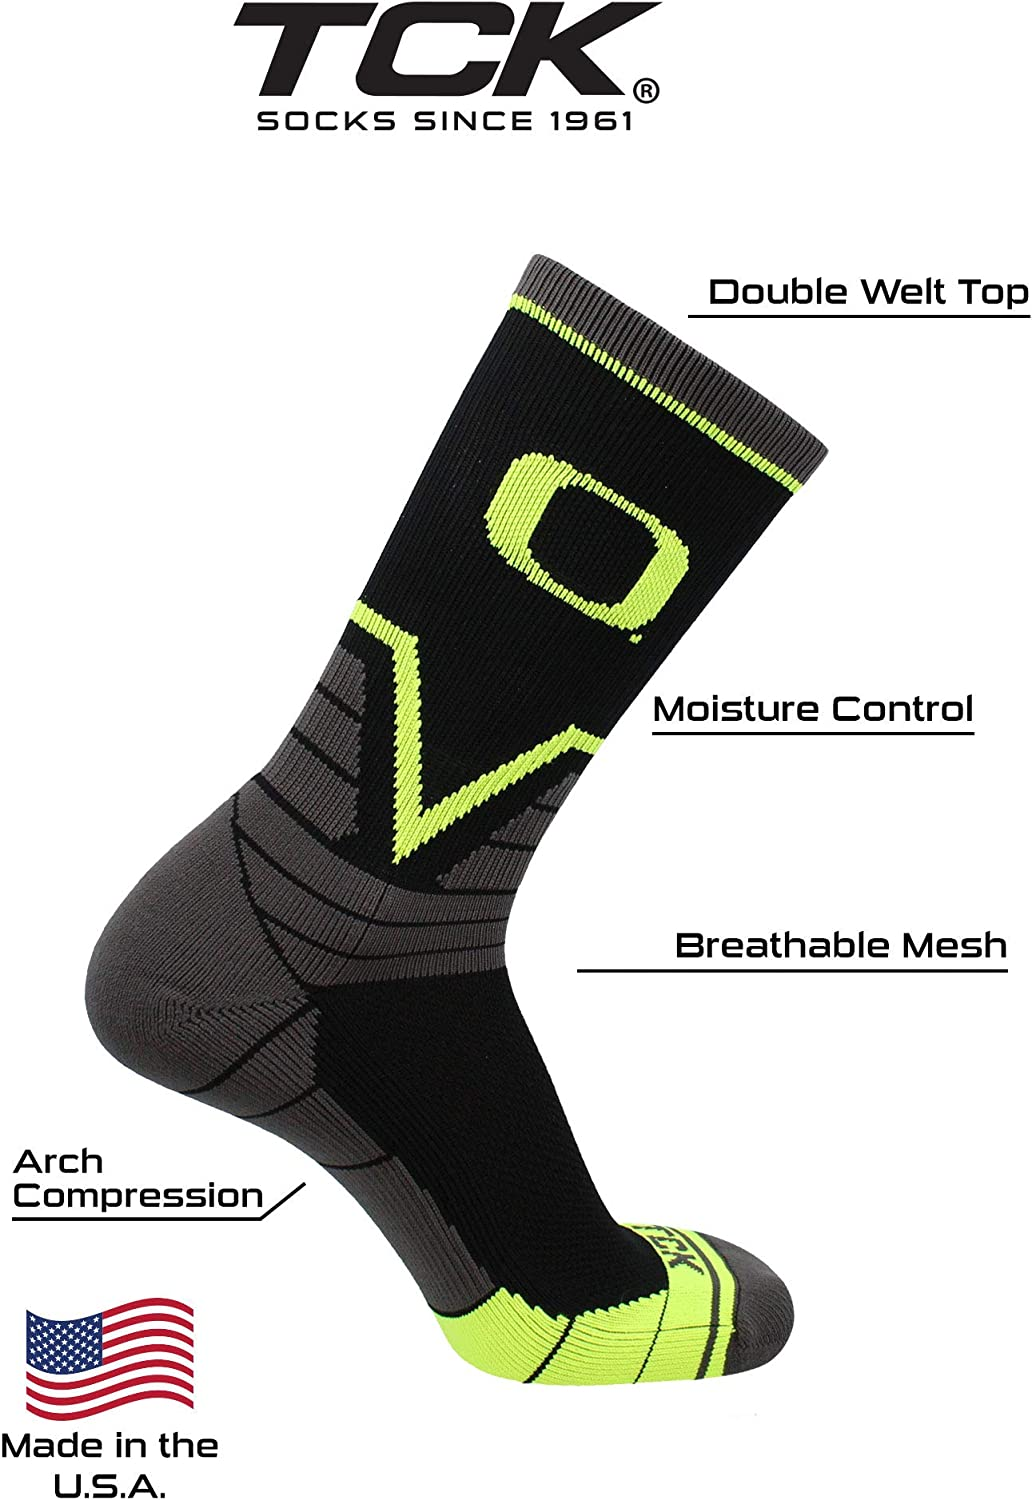 TCK Oregon Ducks Socks Victory Crew